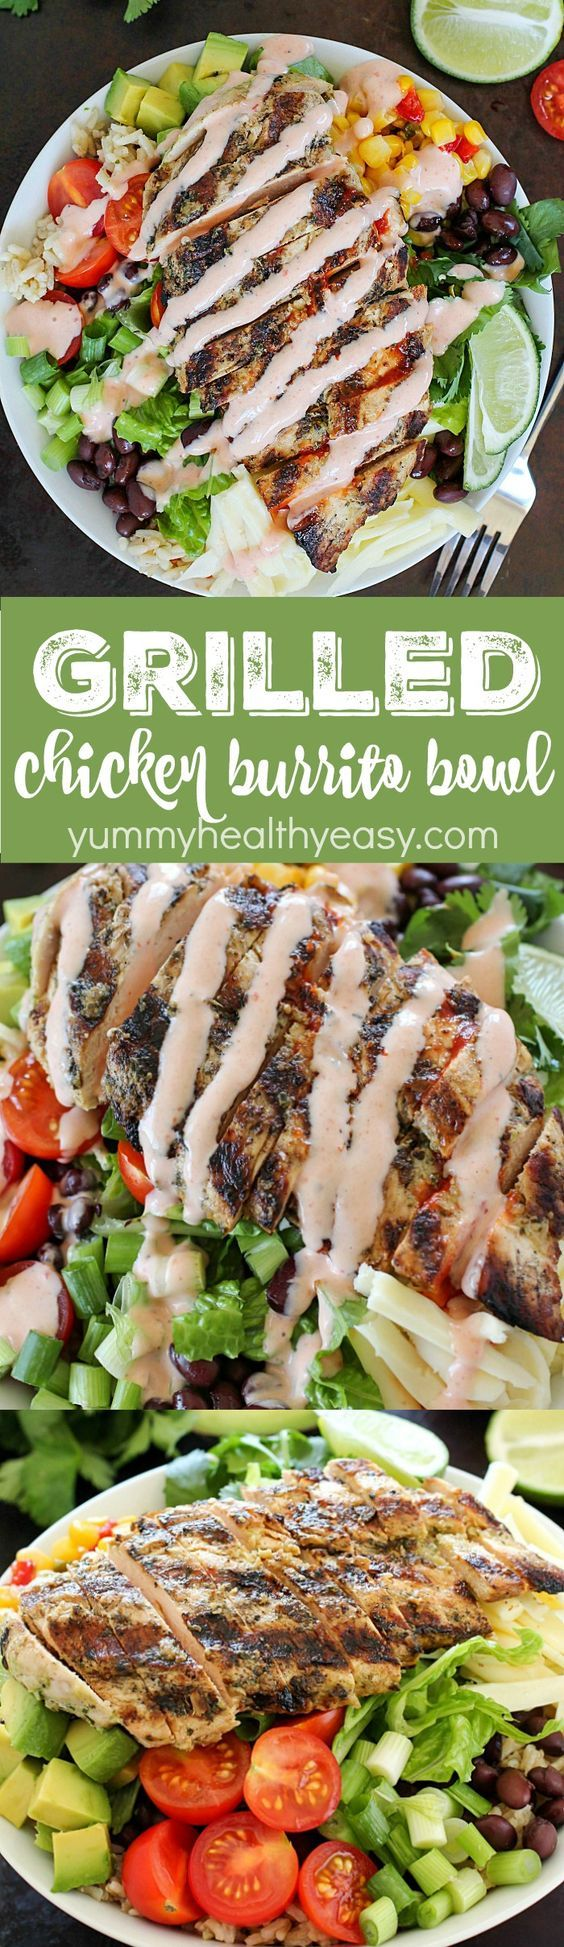 Grilled Chicken Burrito Bowl ~ ditch the tortilla and put everything you love about burritos into a yummy chicken burrito bowl! This recipe is so easy and adaptable to what you like, with tender, marinated and grilled chicken! Add in any combo of brown rice, black beans, lettuce, corn, avocado, cheese, green onions, cilantro, tomatoes, salsa and a drizzling of ranch taco sauce. A fresh, delicious and healthy lunch or dinner!